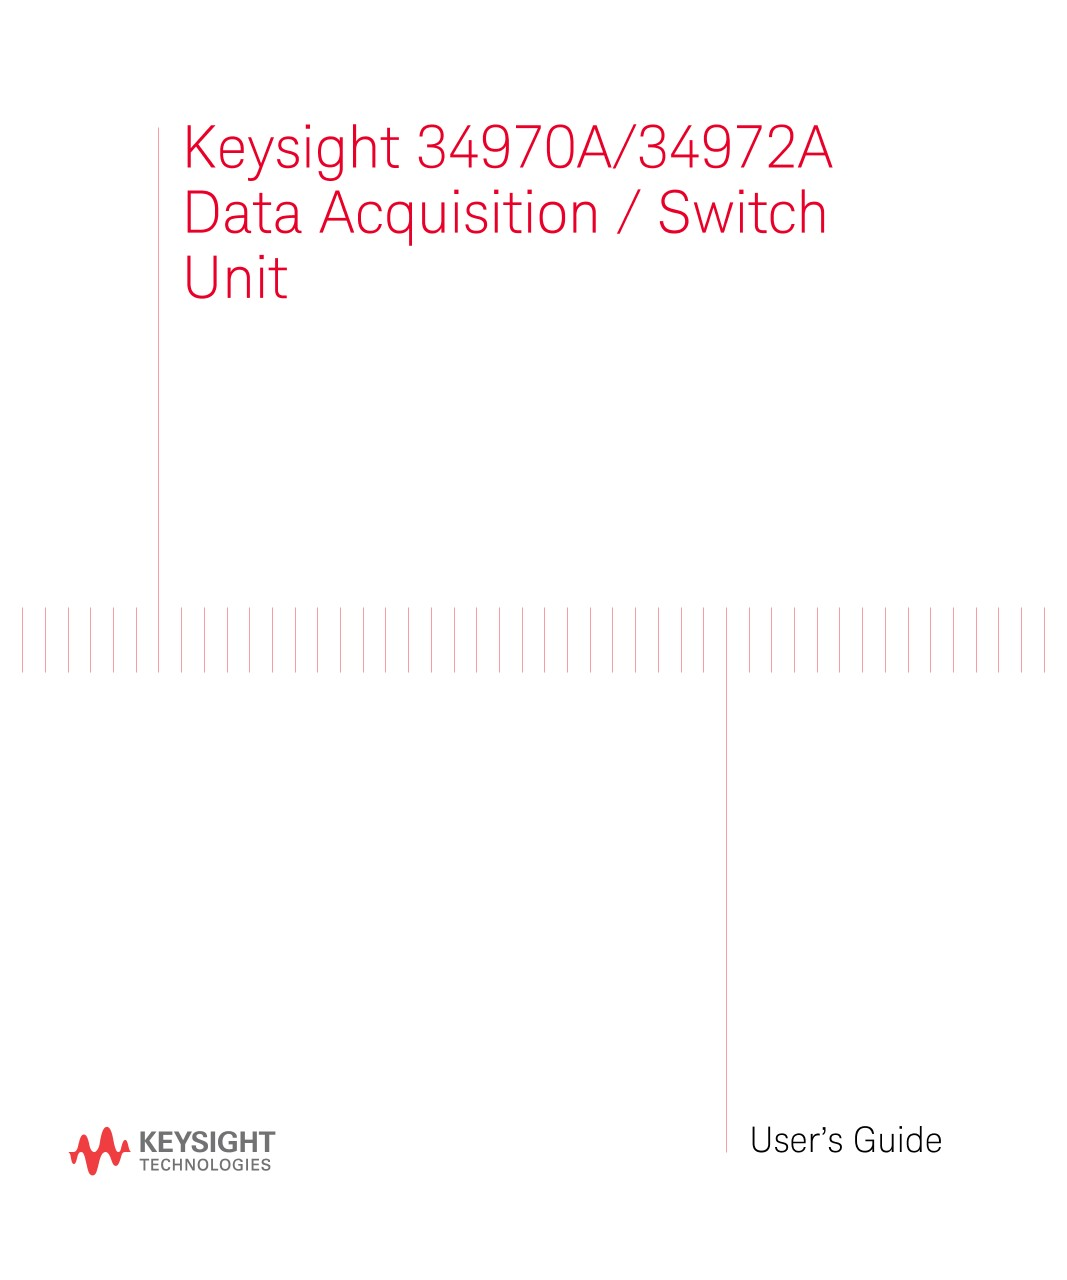 34970A/34972A Data Acquisition / Switch Unit User's Guide   Keysight